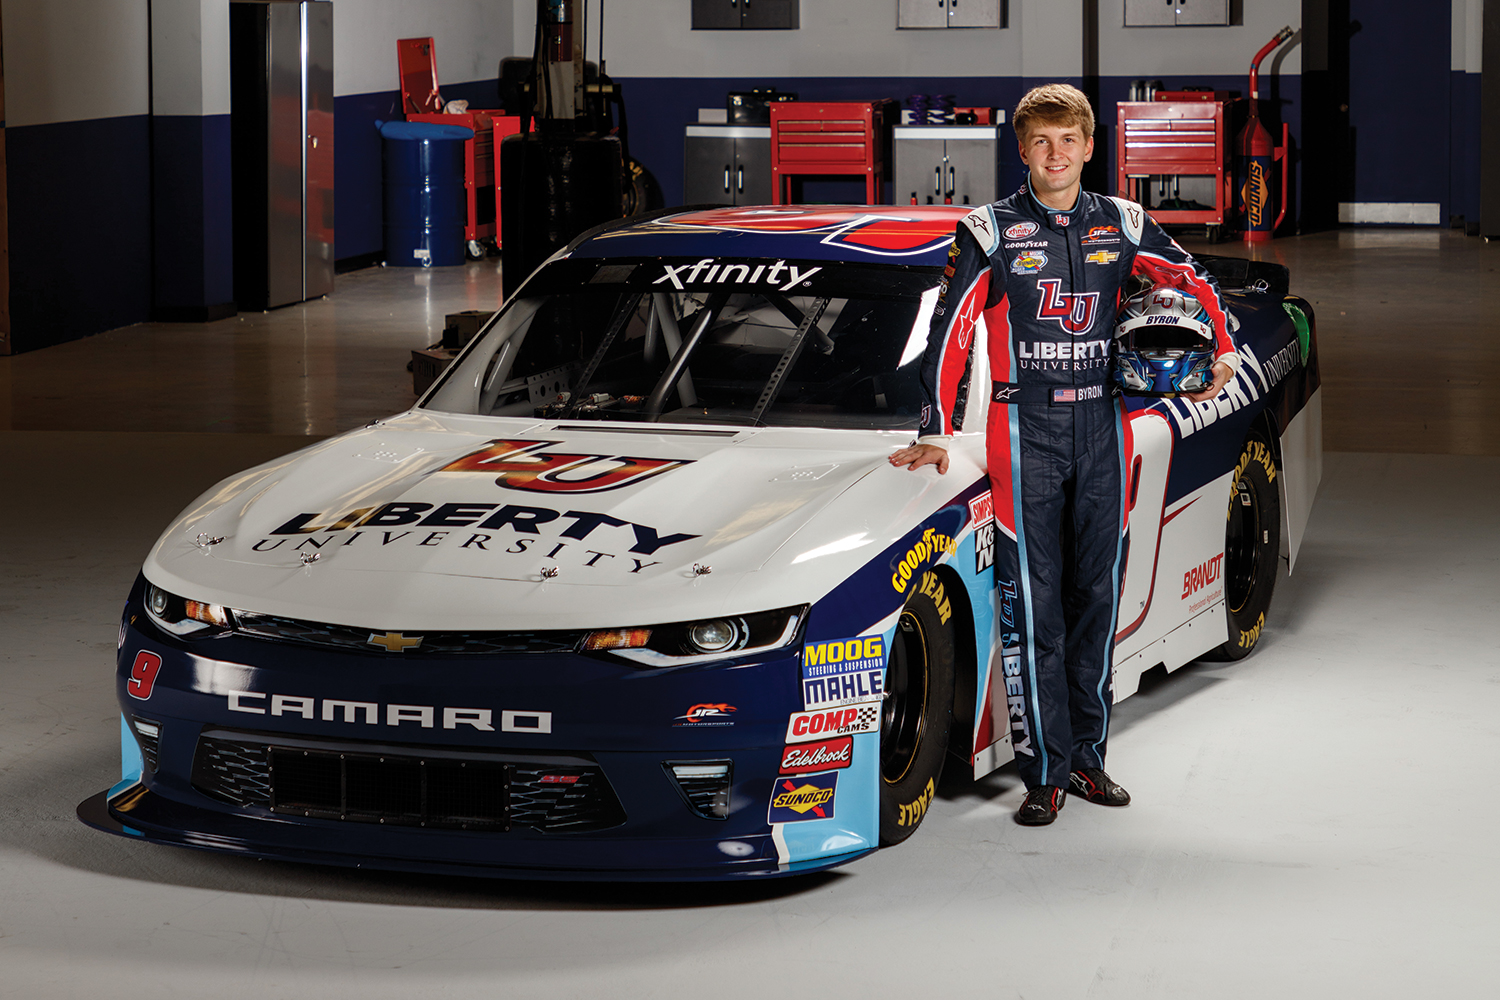 Liberty University freshman William Byron stands with the new Liberty University No. 9 Chevy Camaro he will drive during his rookie season with JR Motorsports (JRM) on the Xfinity Series.